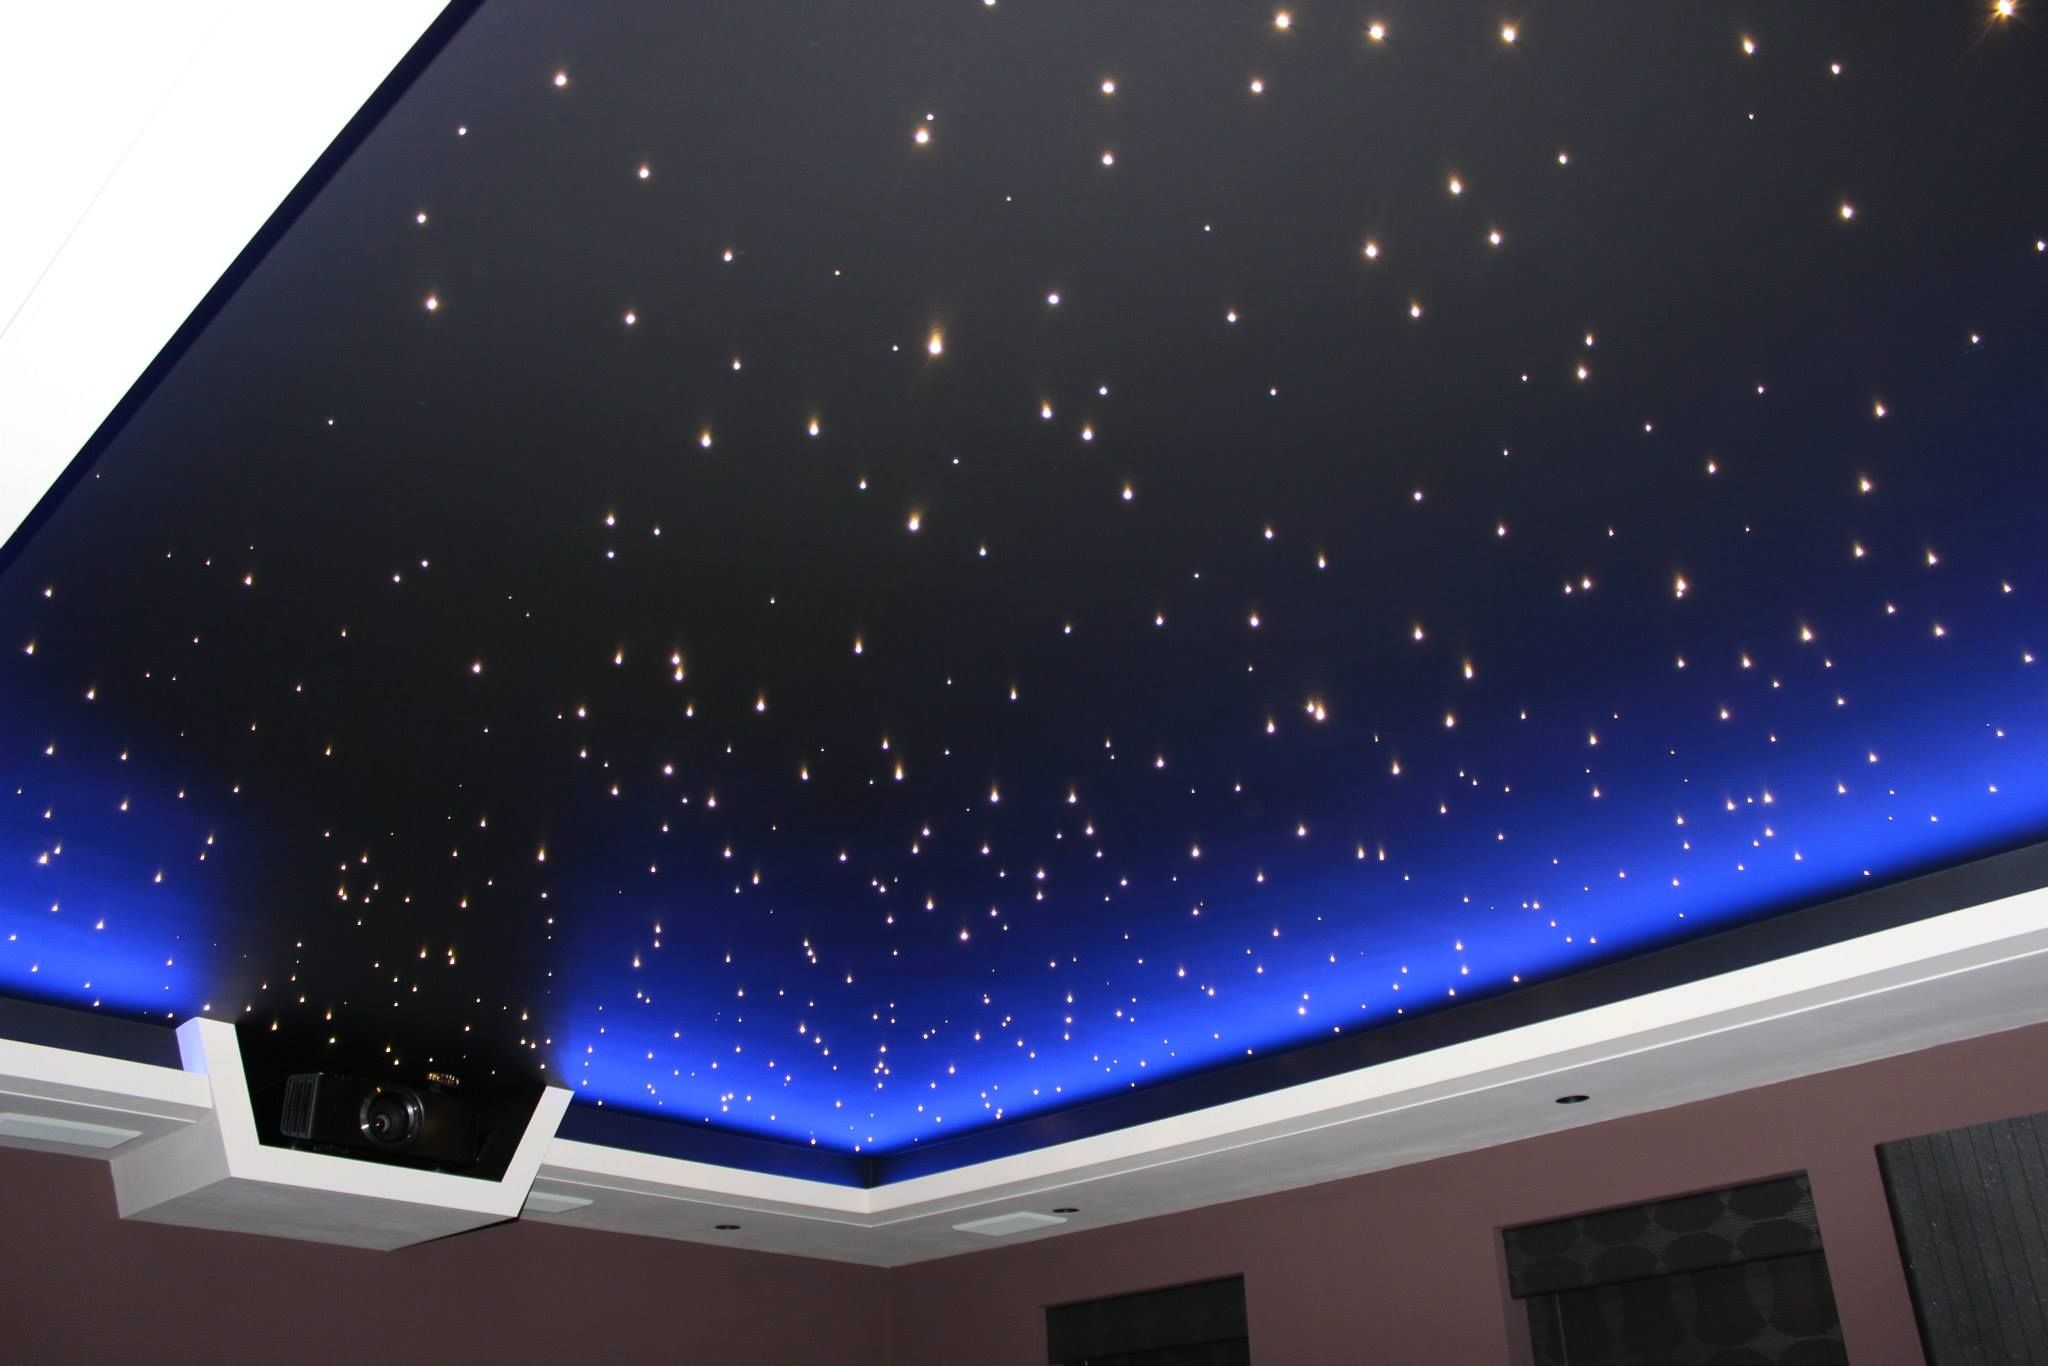 Star Ceiling Light in 2019 | Ceiling projector, False ...